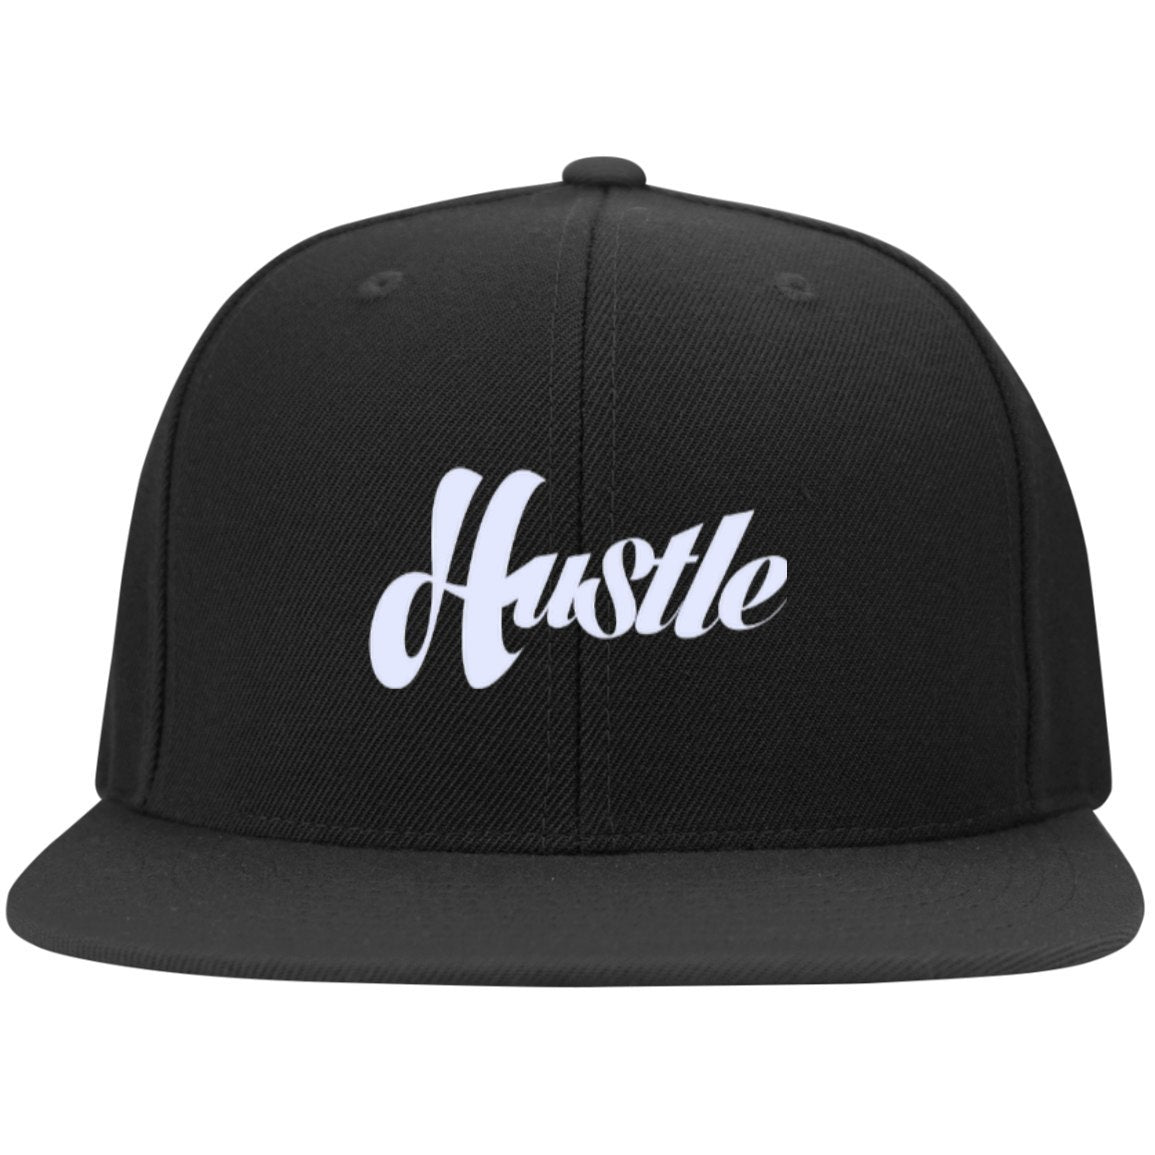 SPECIAL - Hustle Snapback | Limited Edition